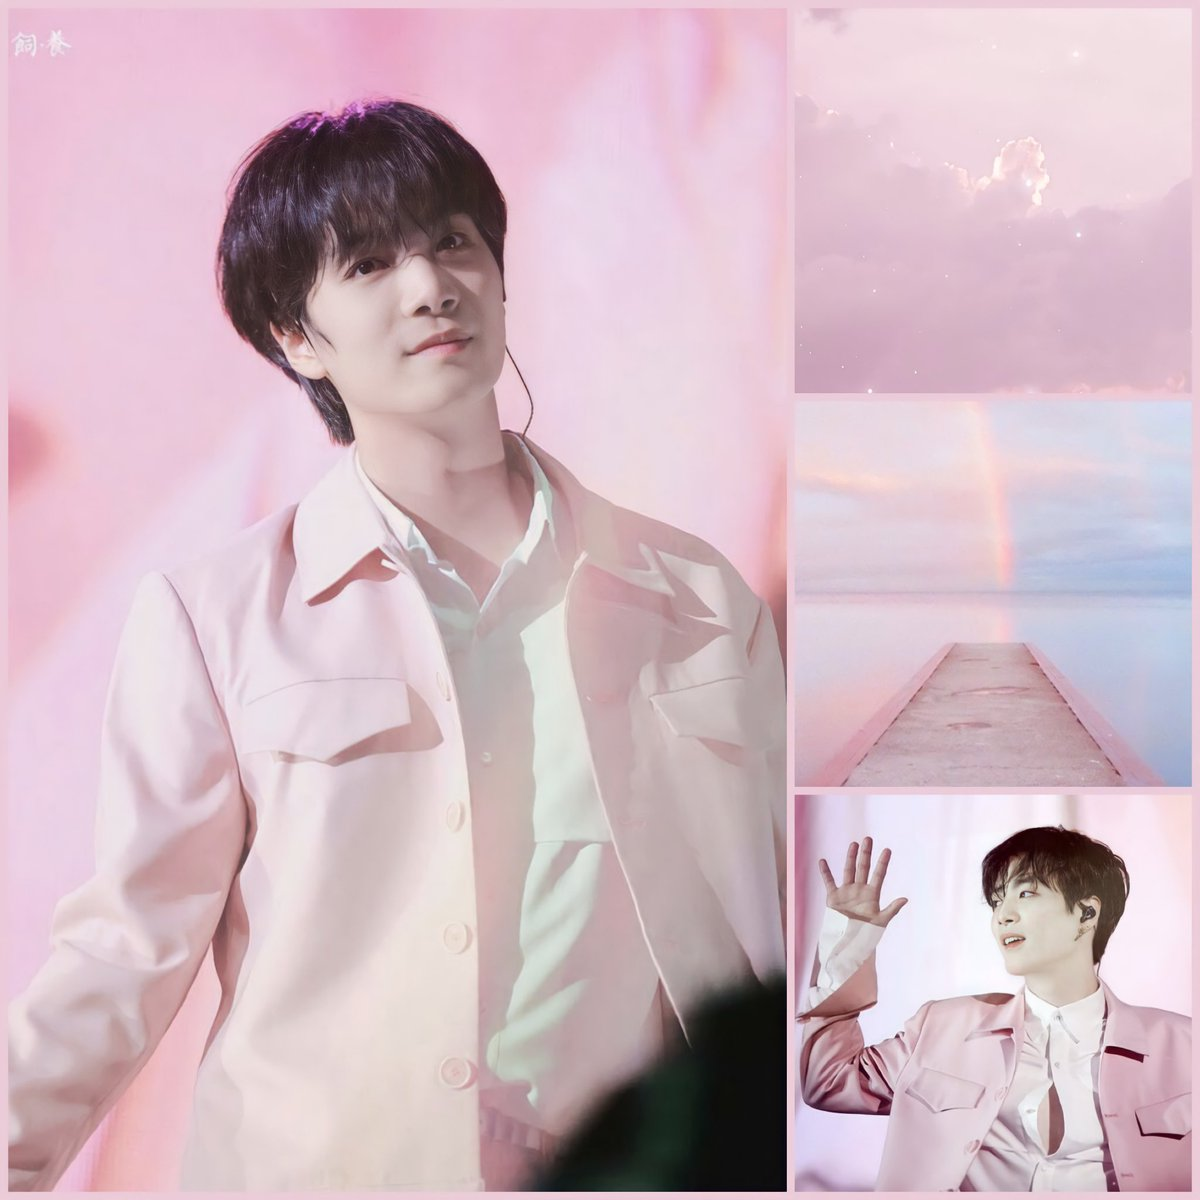 If you want life to smile at you, first give it a good mood #NUEST #JR #김종현 @NUESTNEWS #뉴이스트 https://t.co/yA3d8Bk9xN